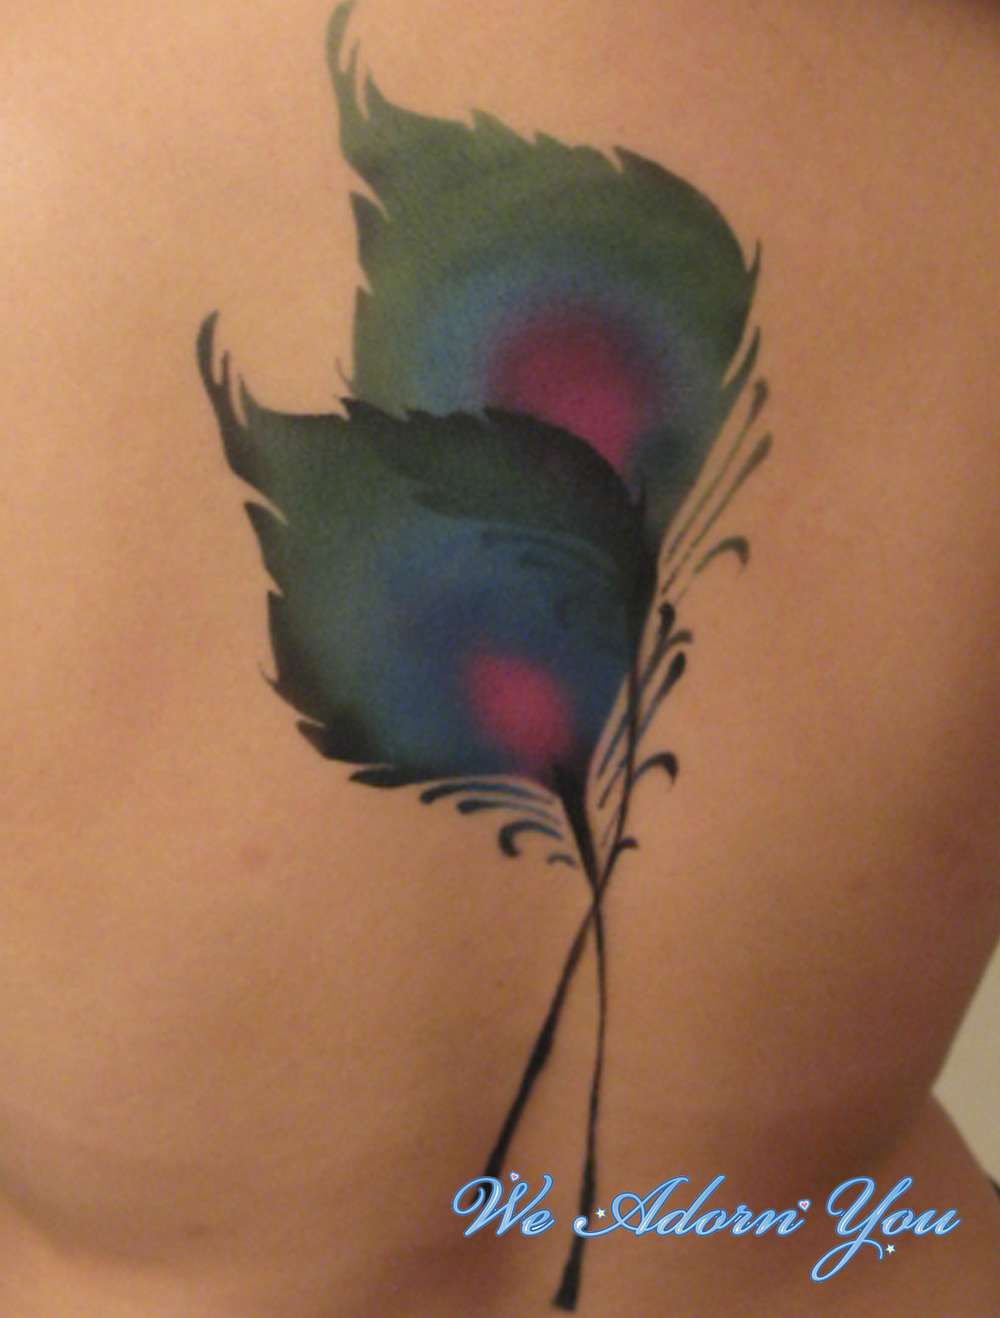 Body Painting Peacock Feather - We Adorn You.jpg